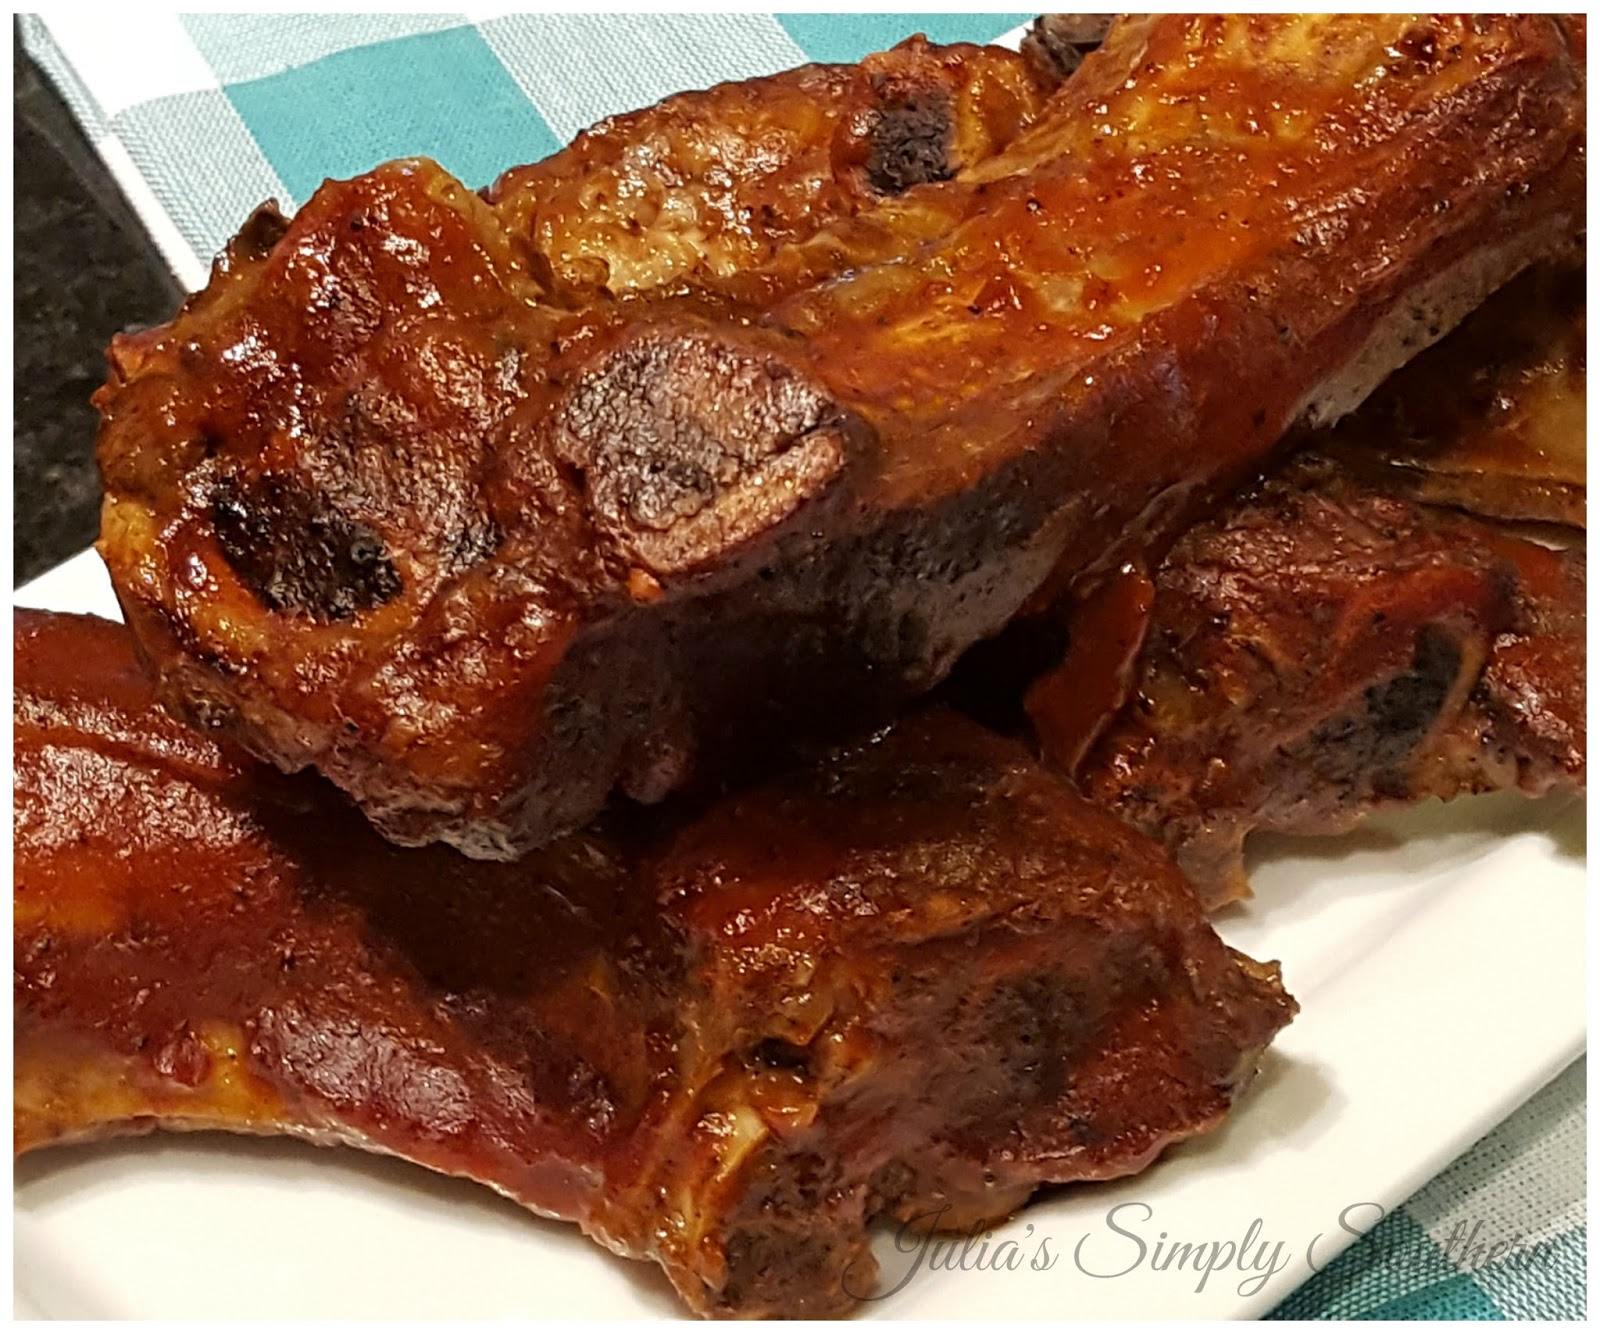 Julia's Simply Southern: Oven Baked BBQ Beef Ribs